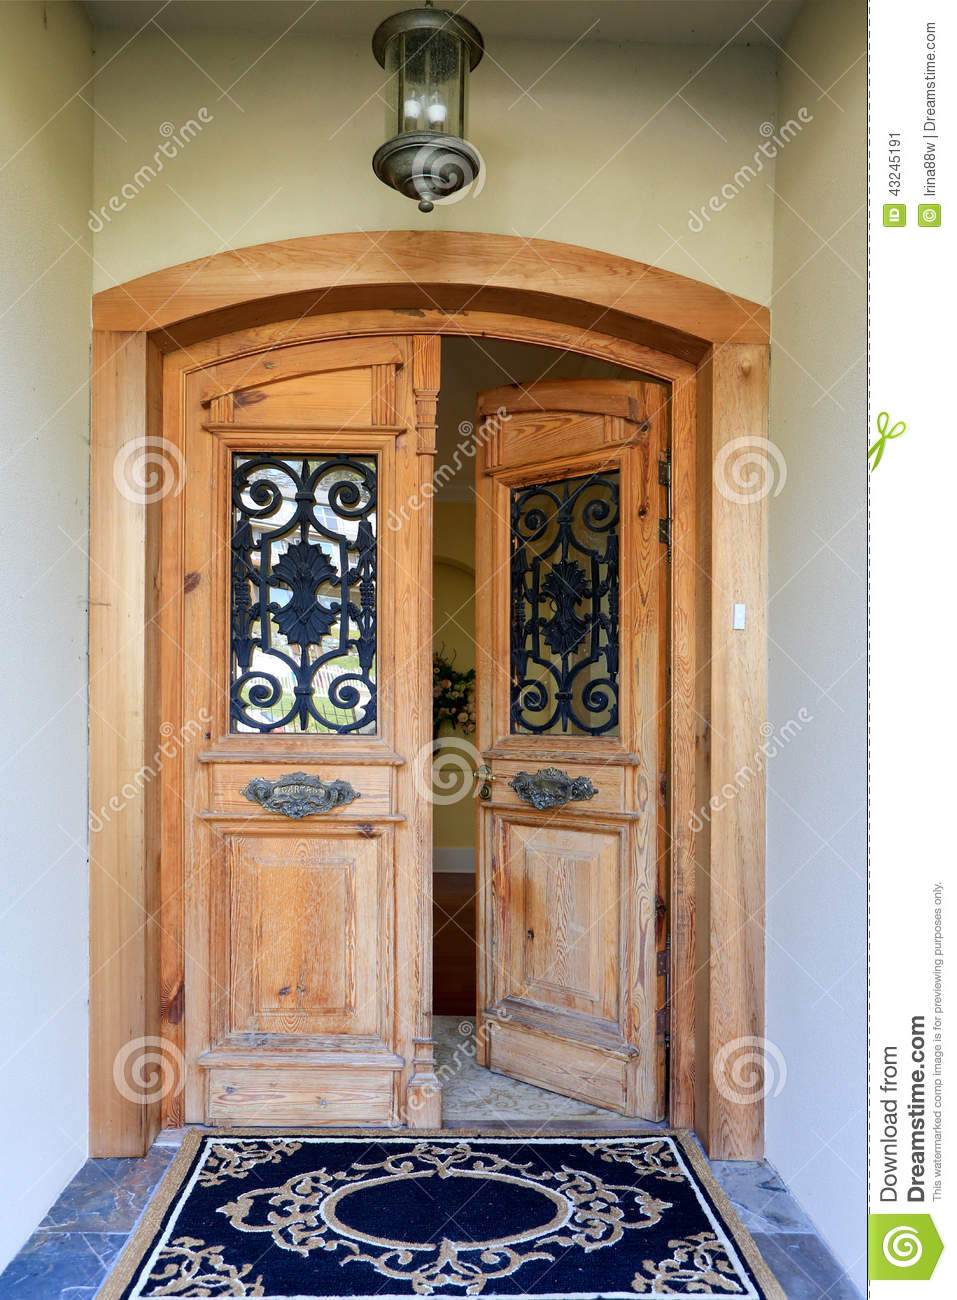 Luxury house entrance porch with open door stock photo for House door image